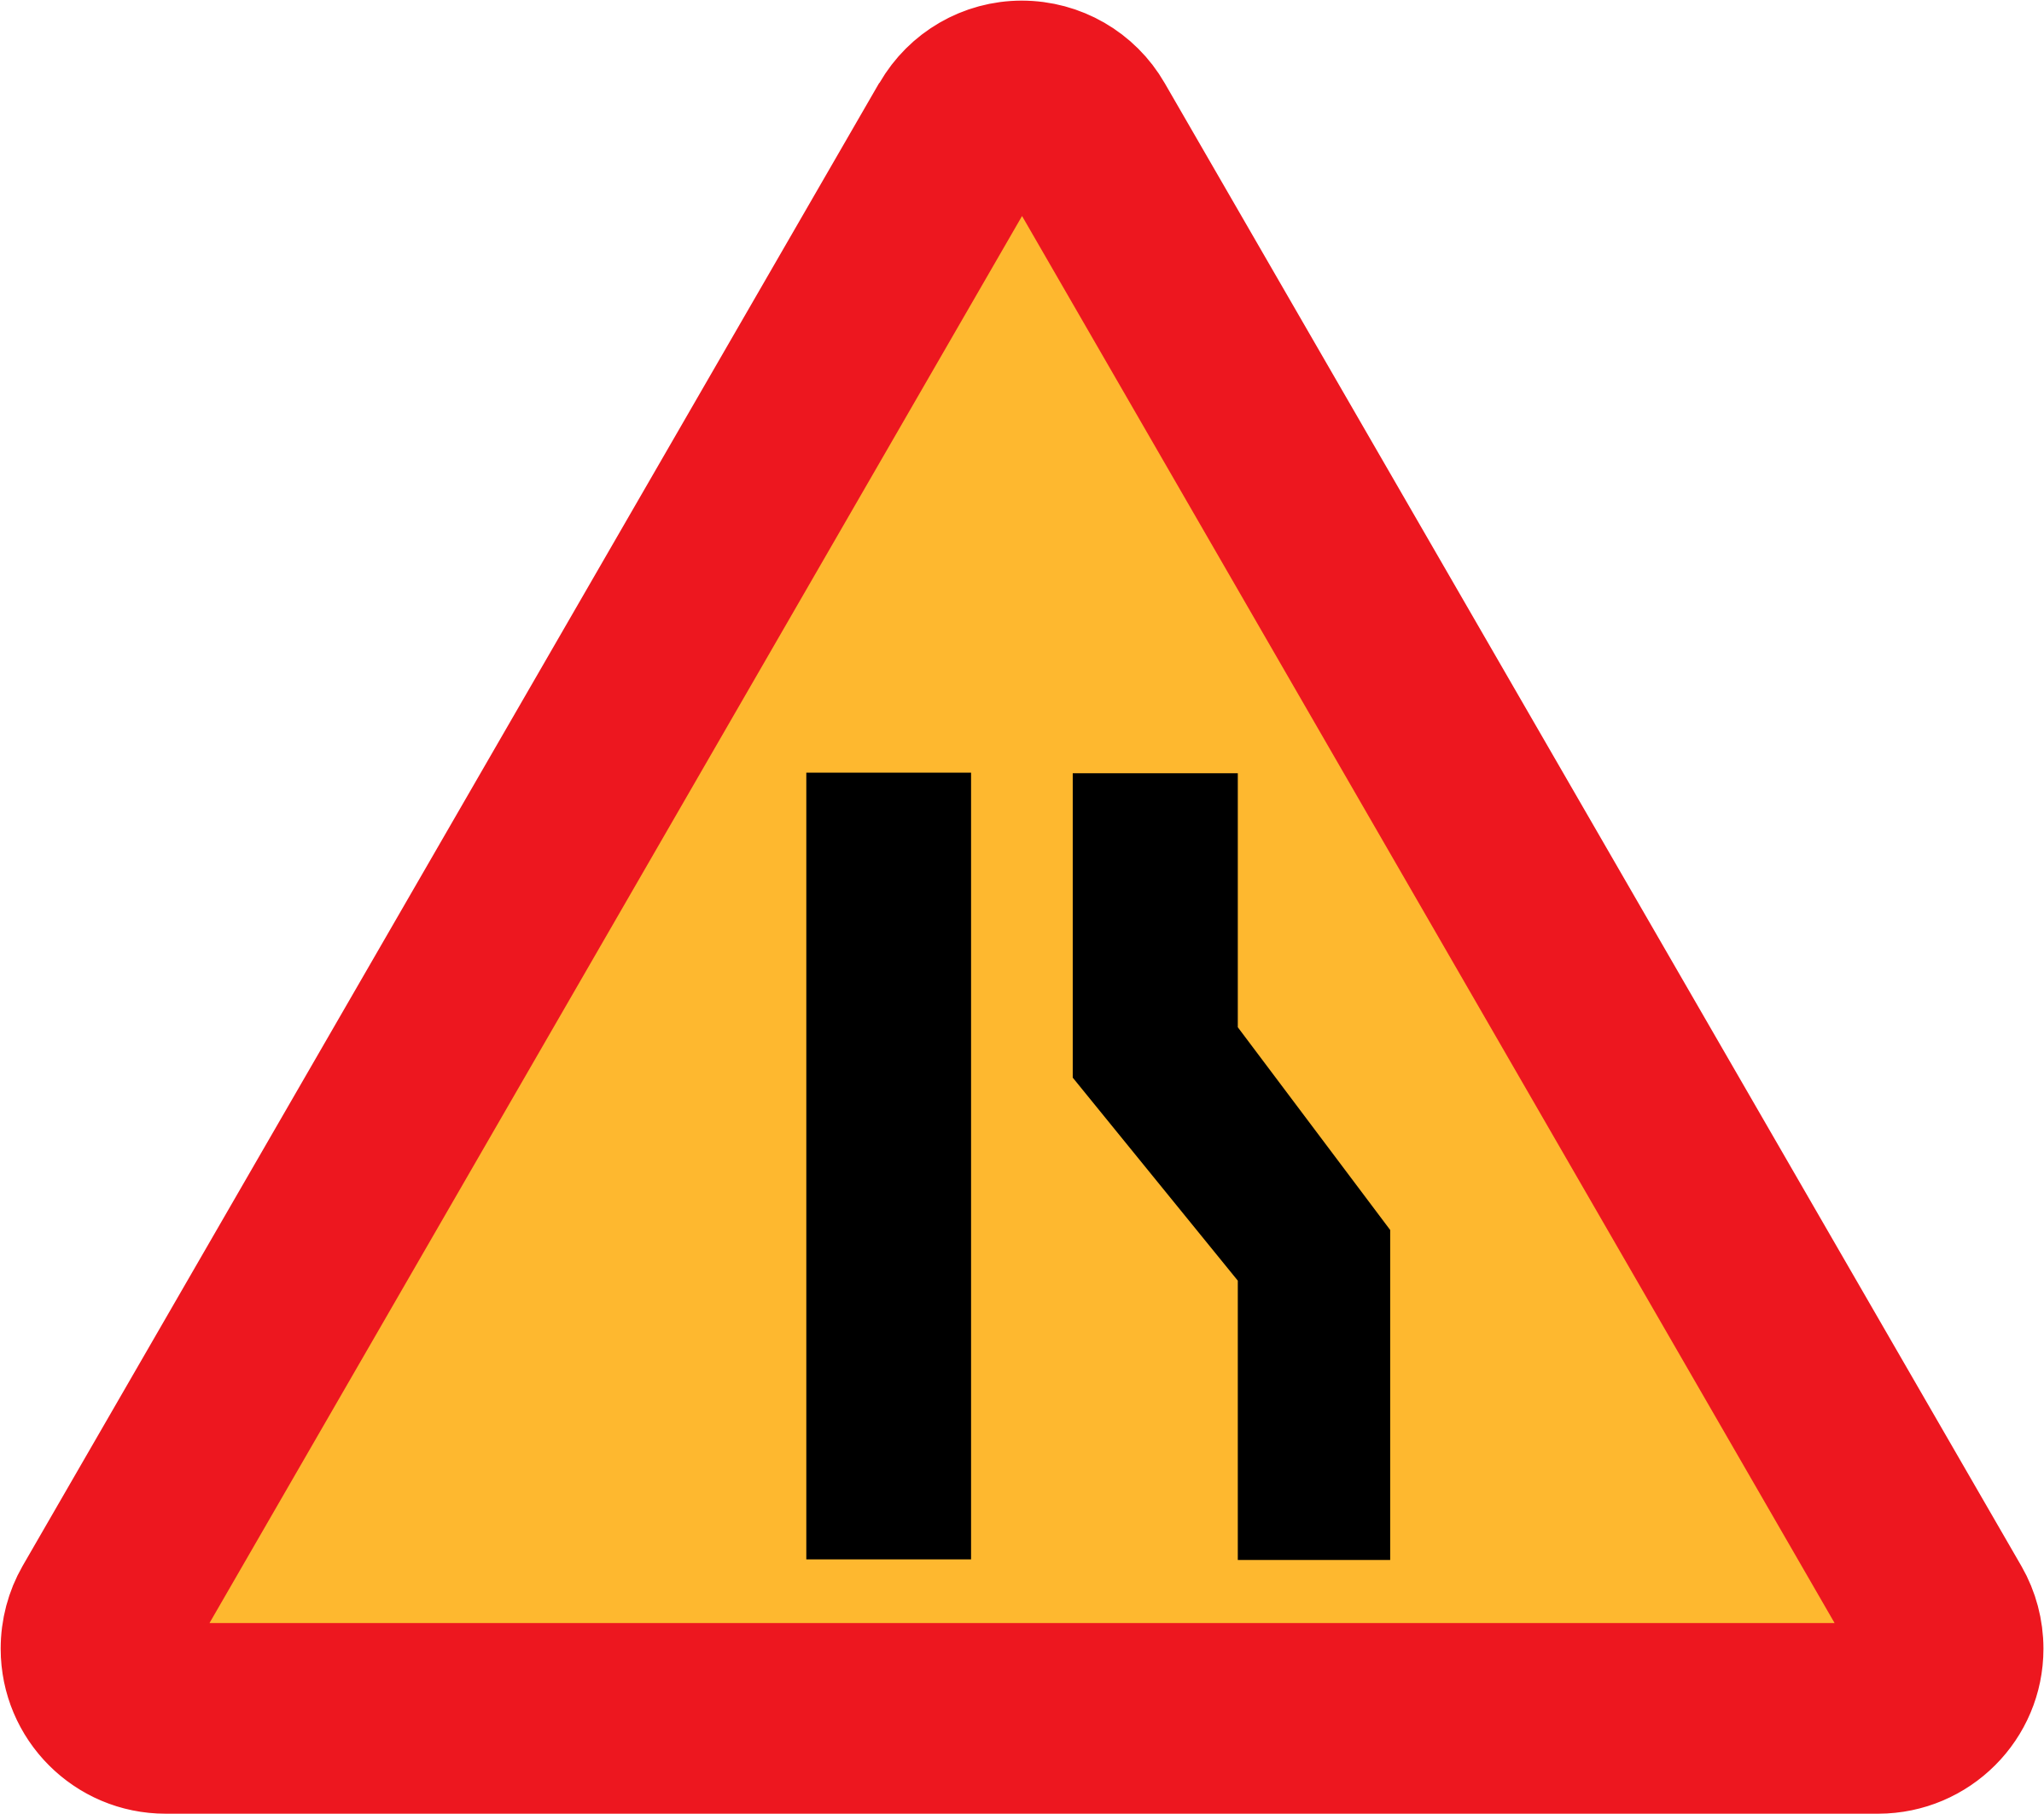 Roadlayout sign 9 by ryanlerch